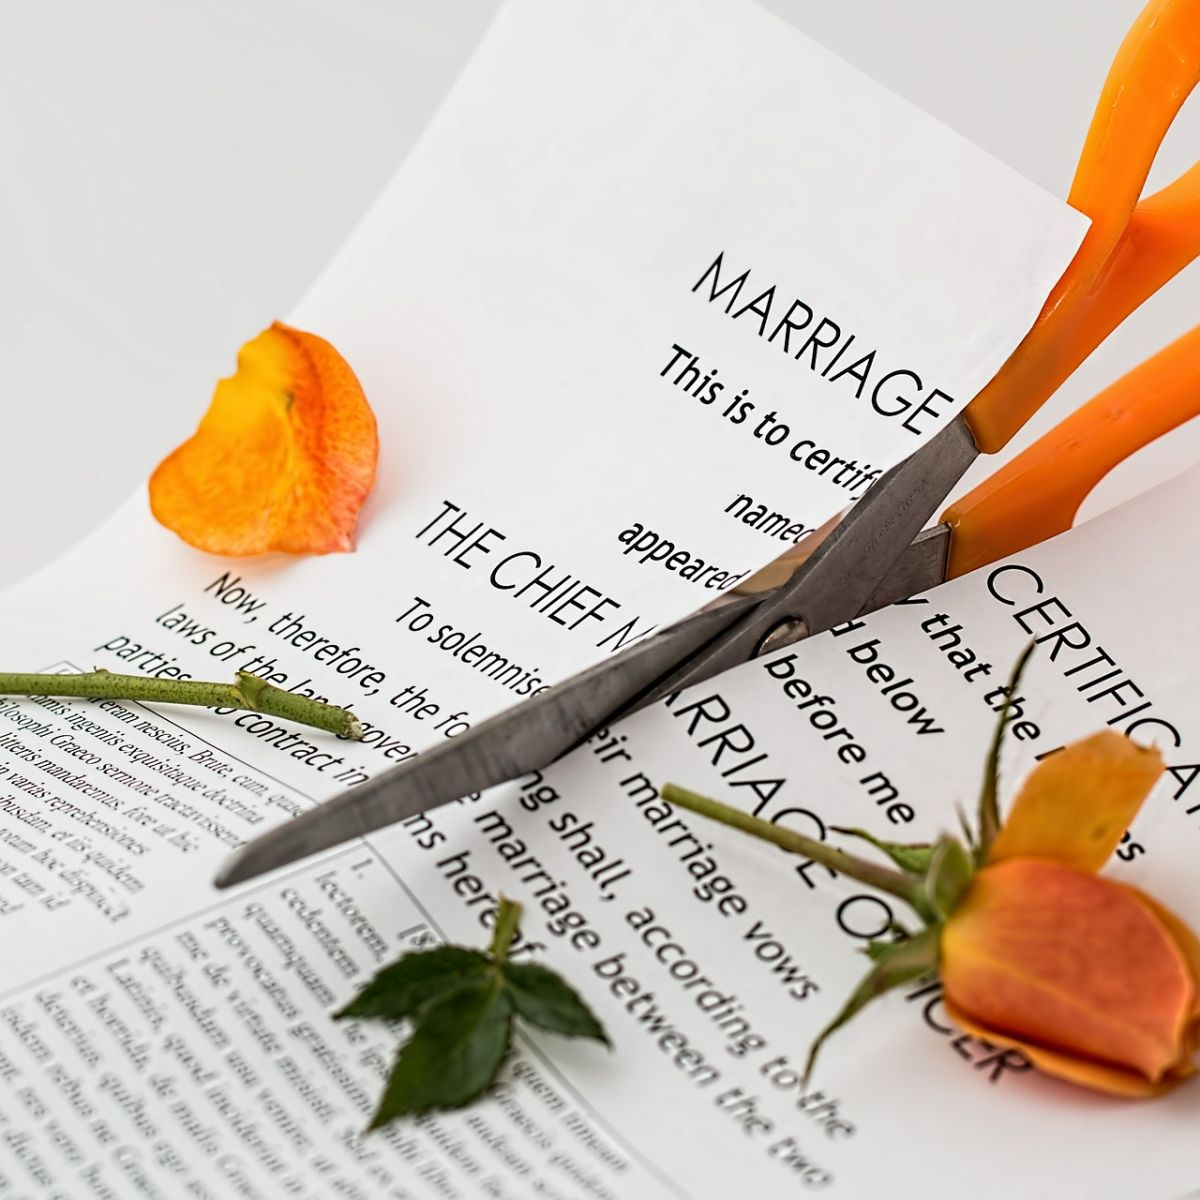 Cut marriage contract with scissors